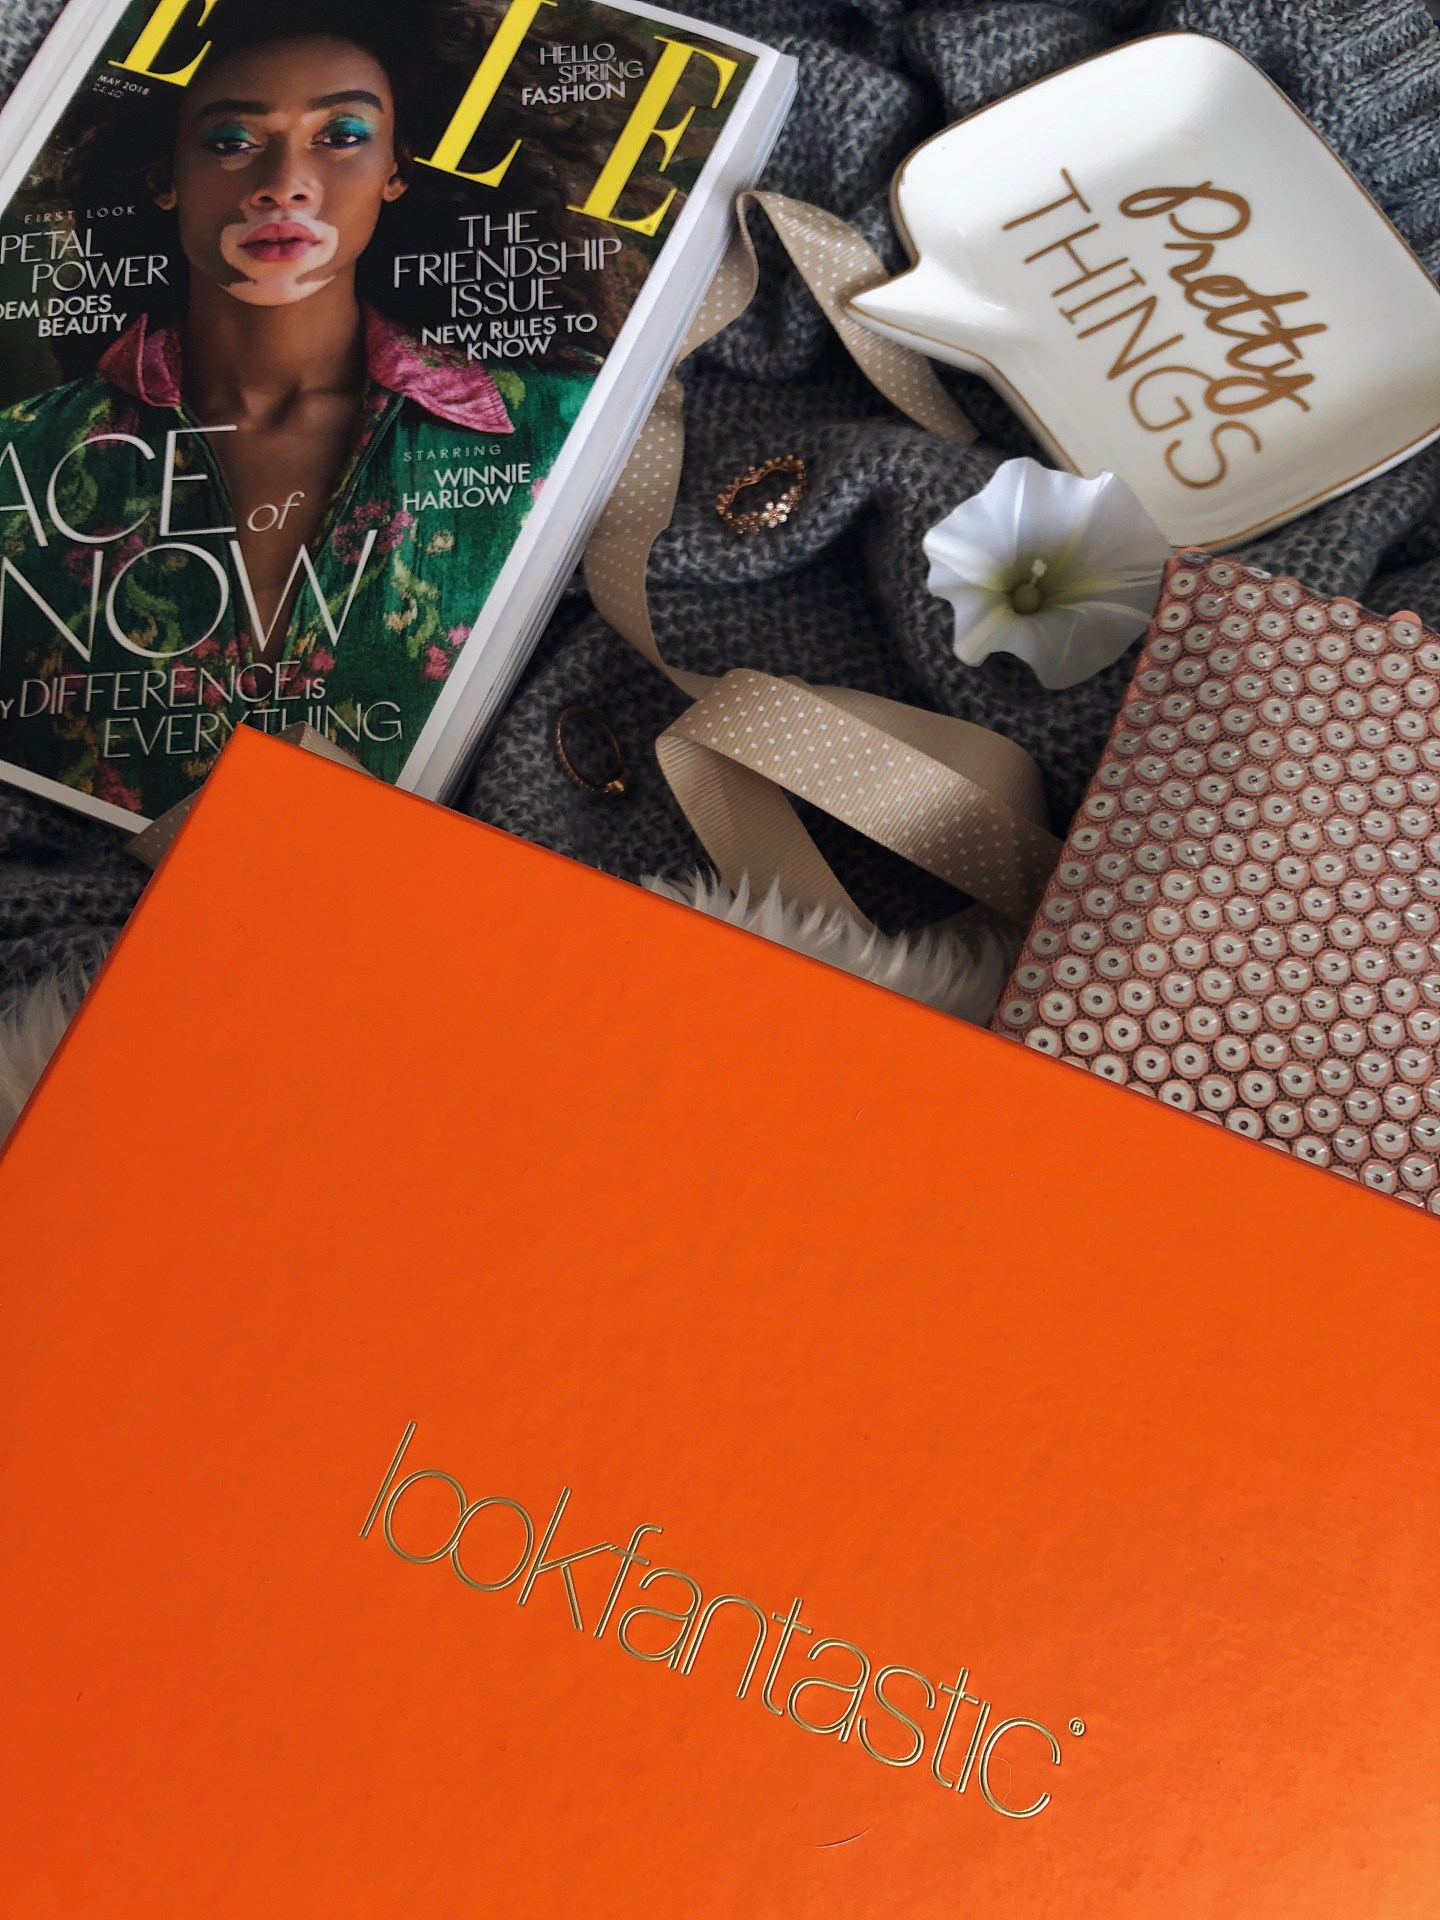 May 2018 Lookfantastic Subscription Box